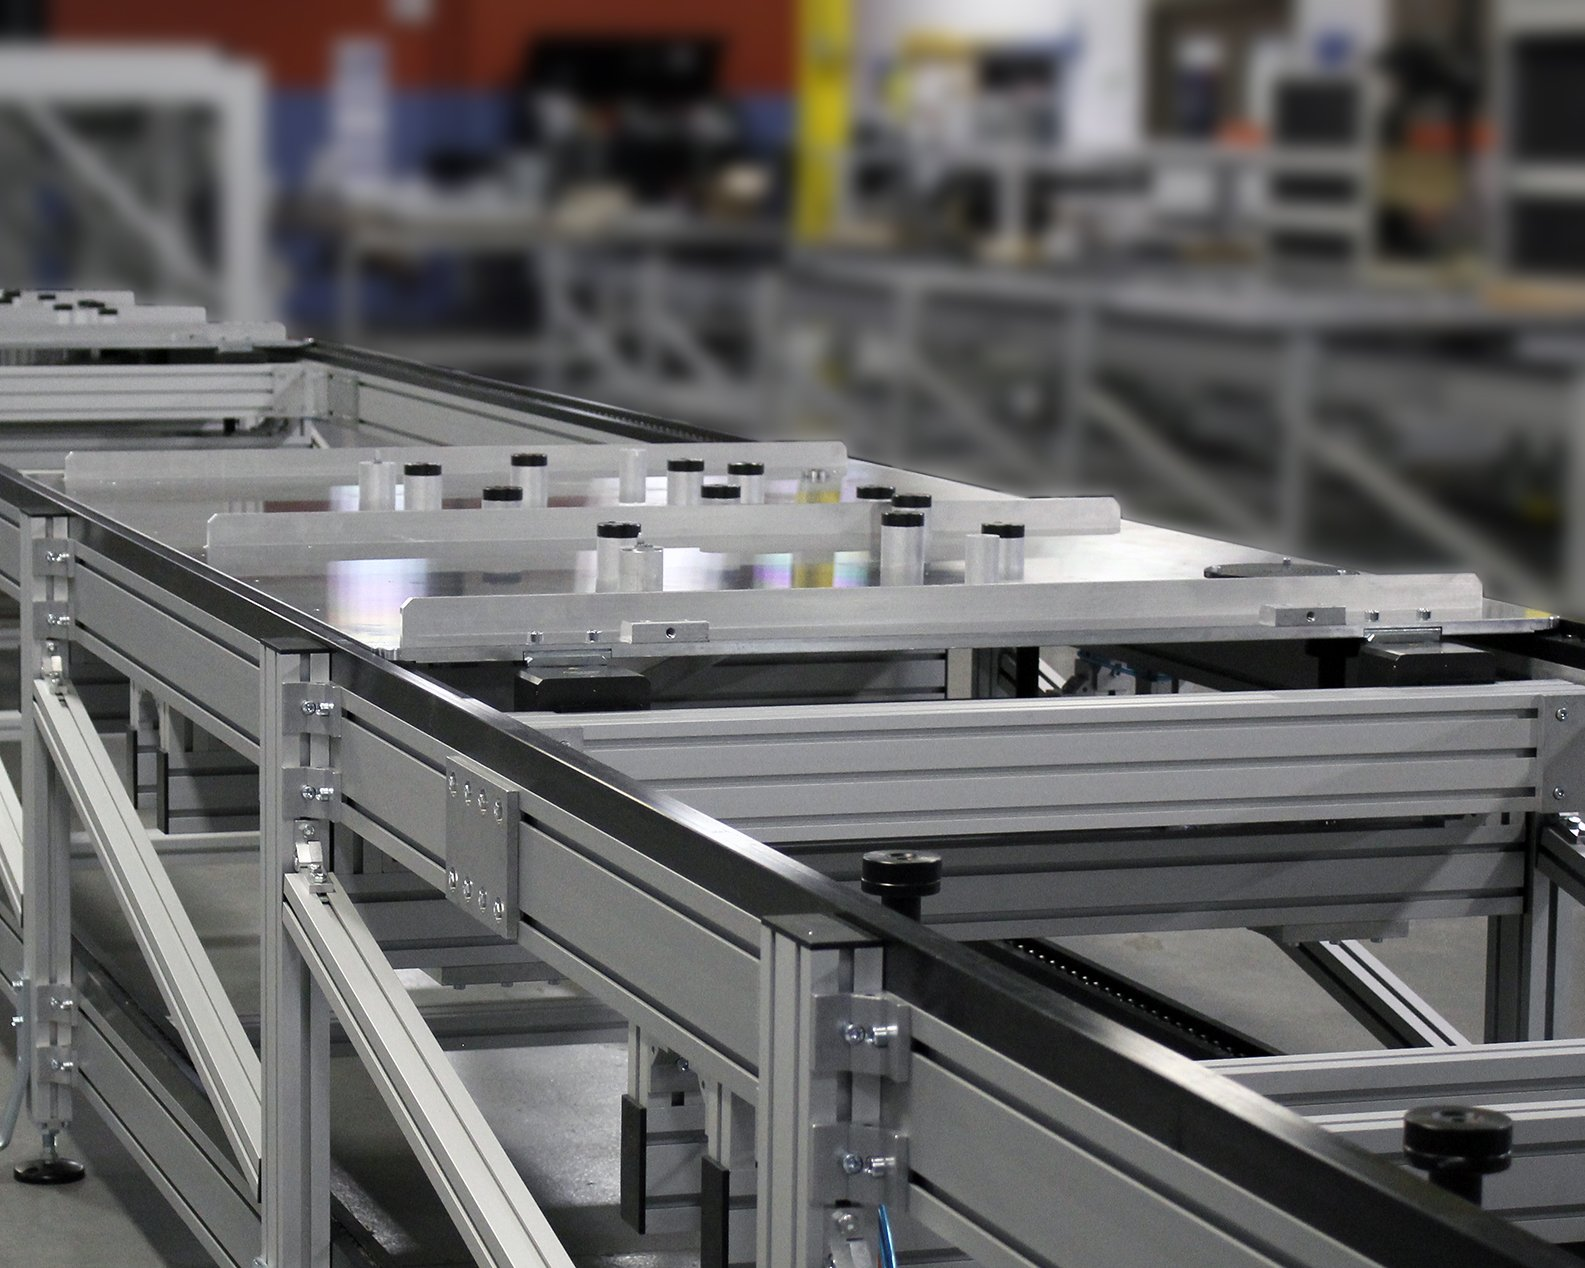 Wide conveyor carrying a wide pallet.